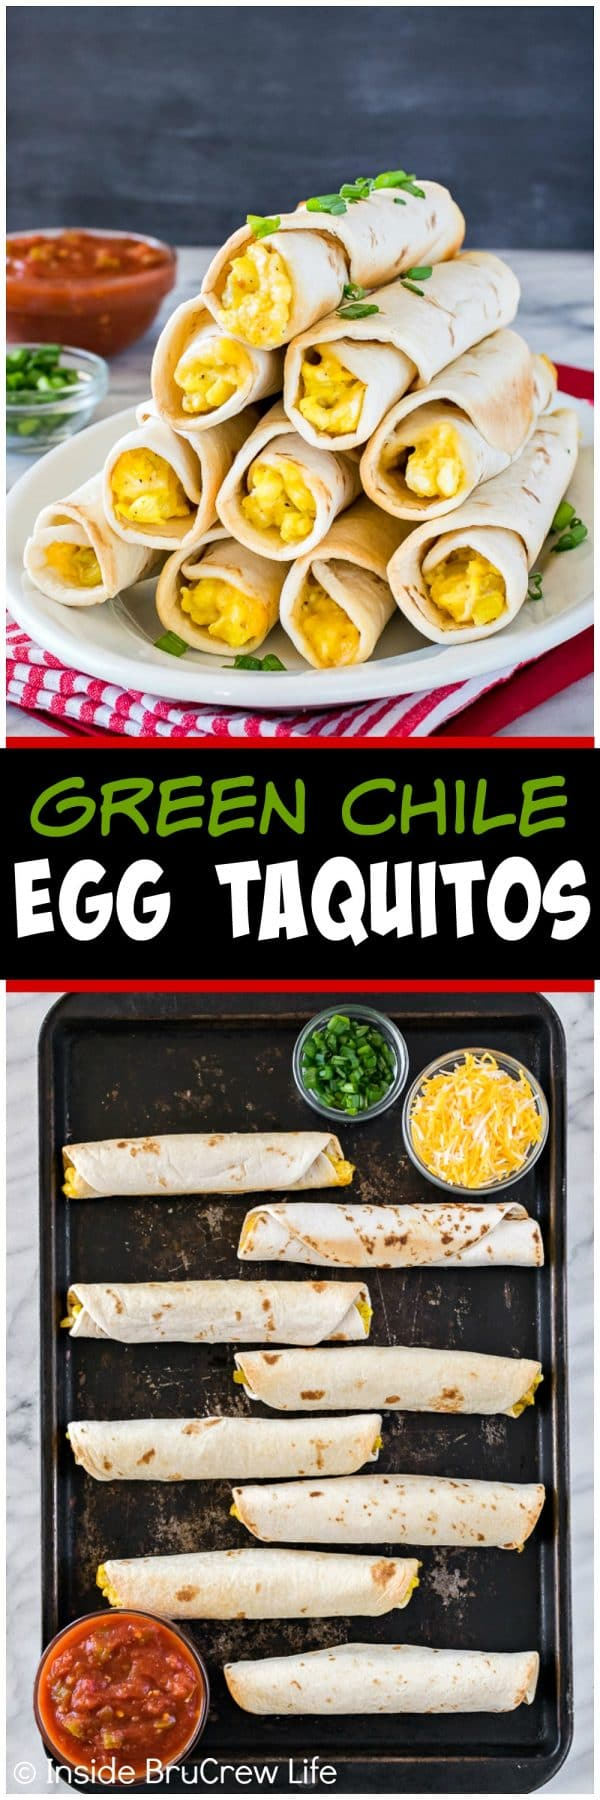 Green Chile Egg Taquitos - eggs, cheese, and green chiles rolled in a tortilla makes a great breakfast recipe that the whole family will enjoy.